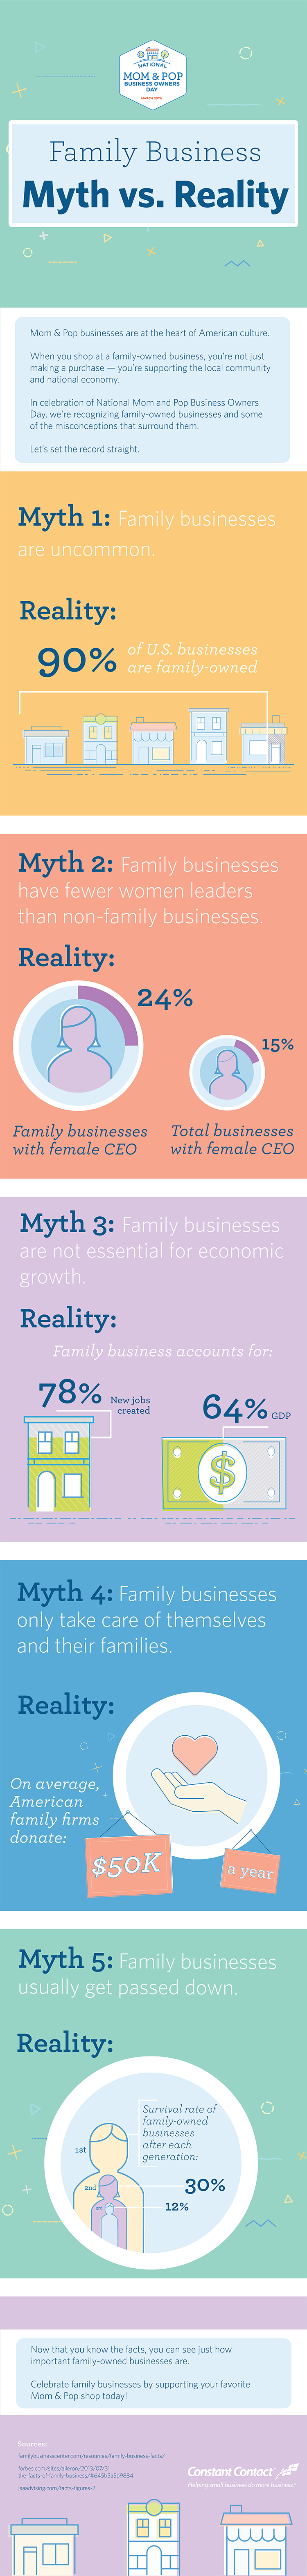 Family Business Myth vs Reality 1